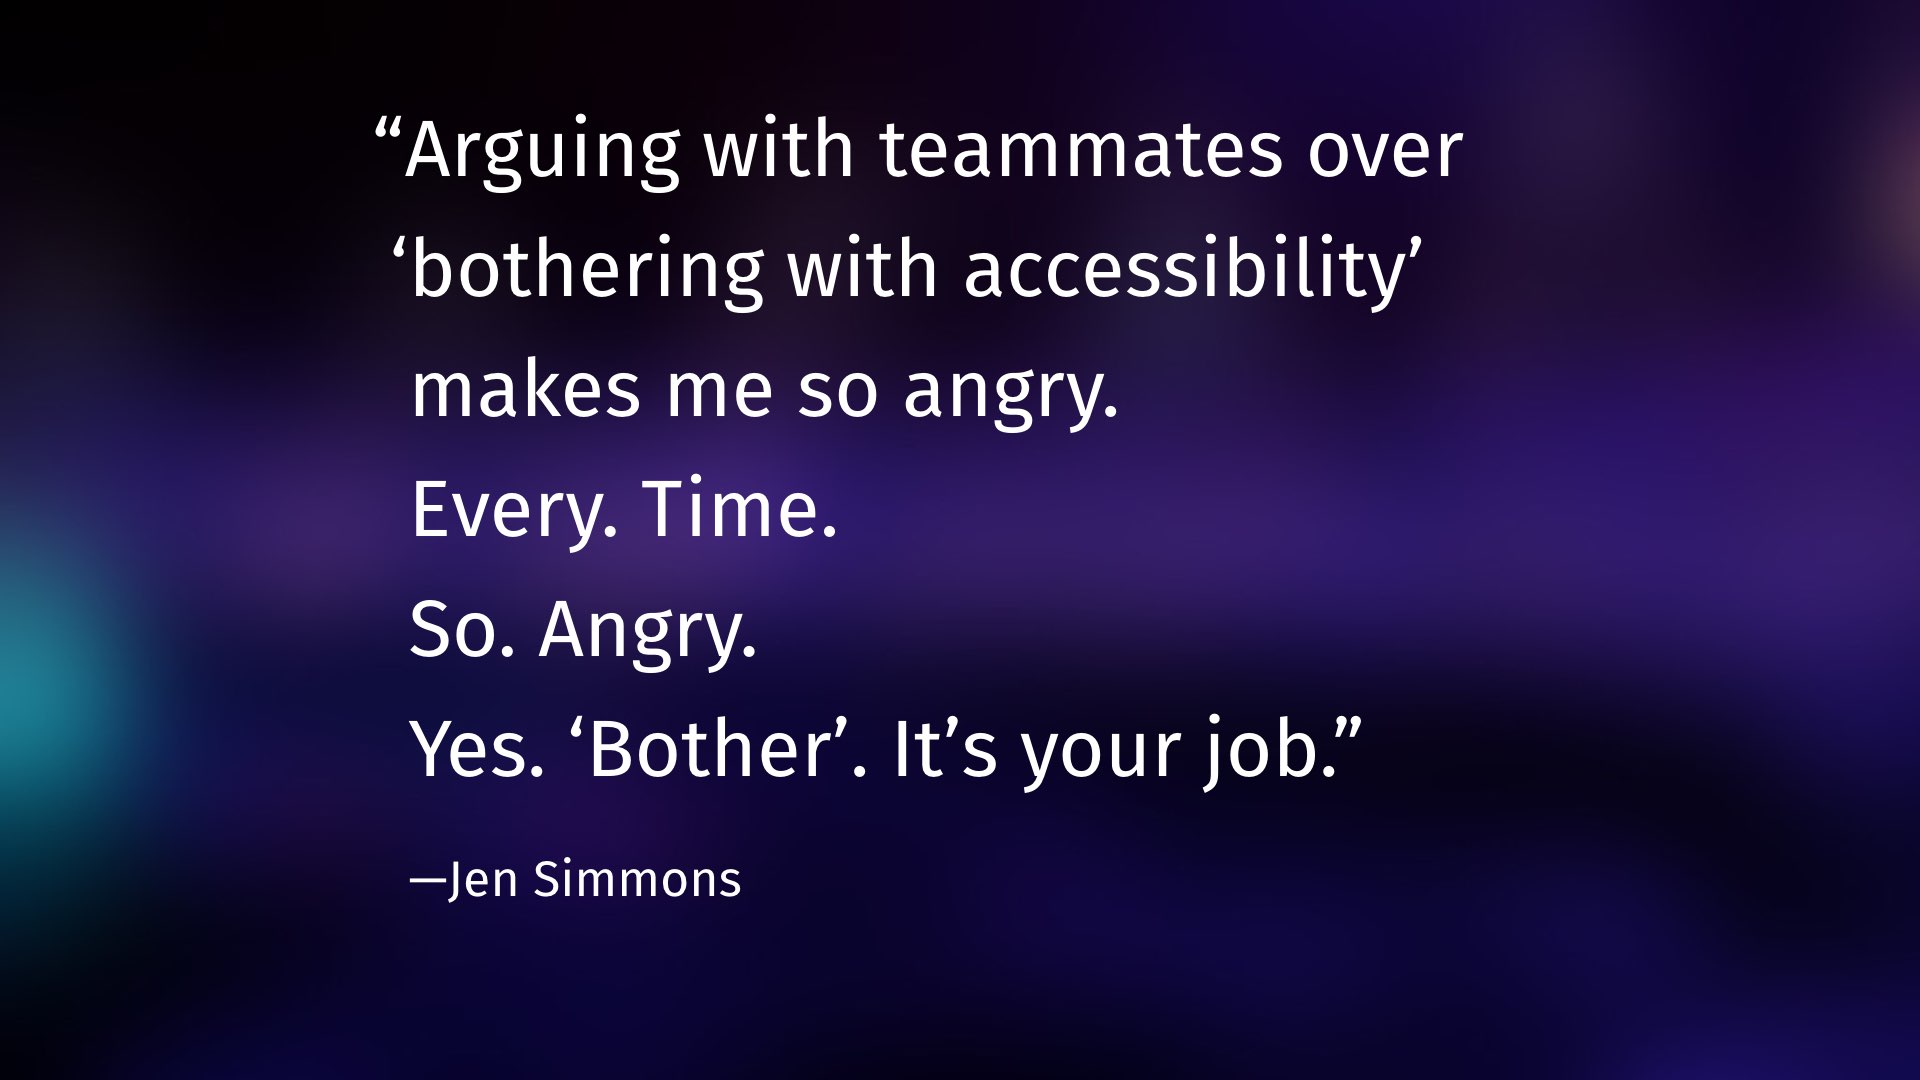 """Arguing with teammates over'bothering with accessibility'makes me so angry.Every. Time.So. Angry.Yes. 'Bother'. It's your job.""—Jen Simmons"